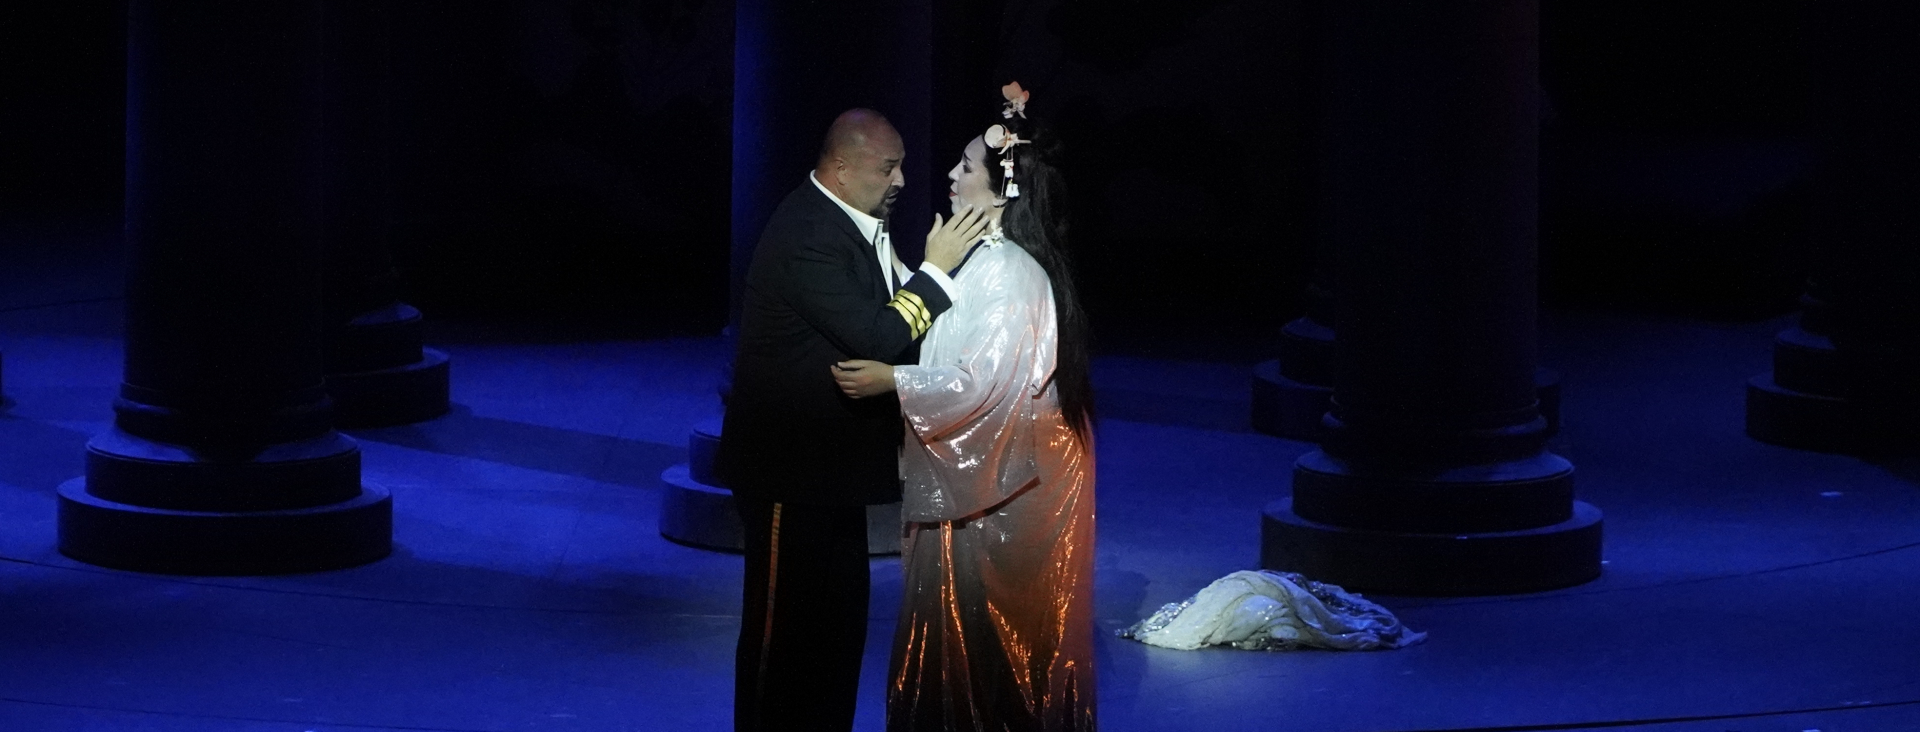 PERALADA'S MADAMA BUTTERFLY SPREAD ITS WINGS IN THE ROYAL OPERA HOUSE, MUSCAT